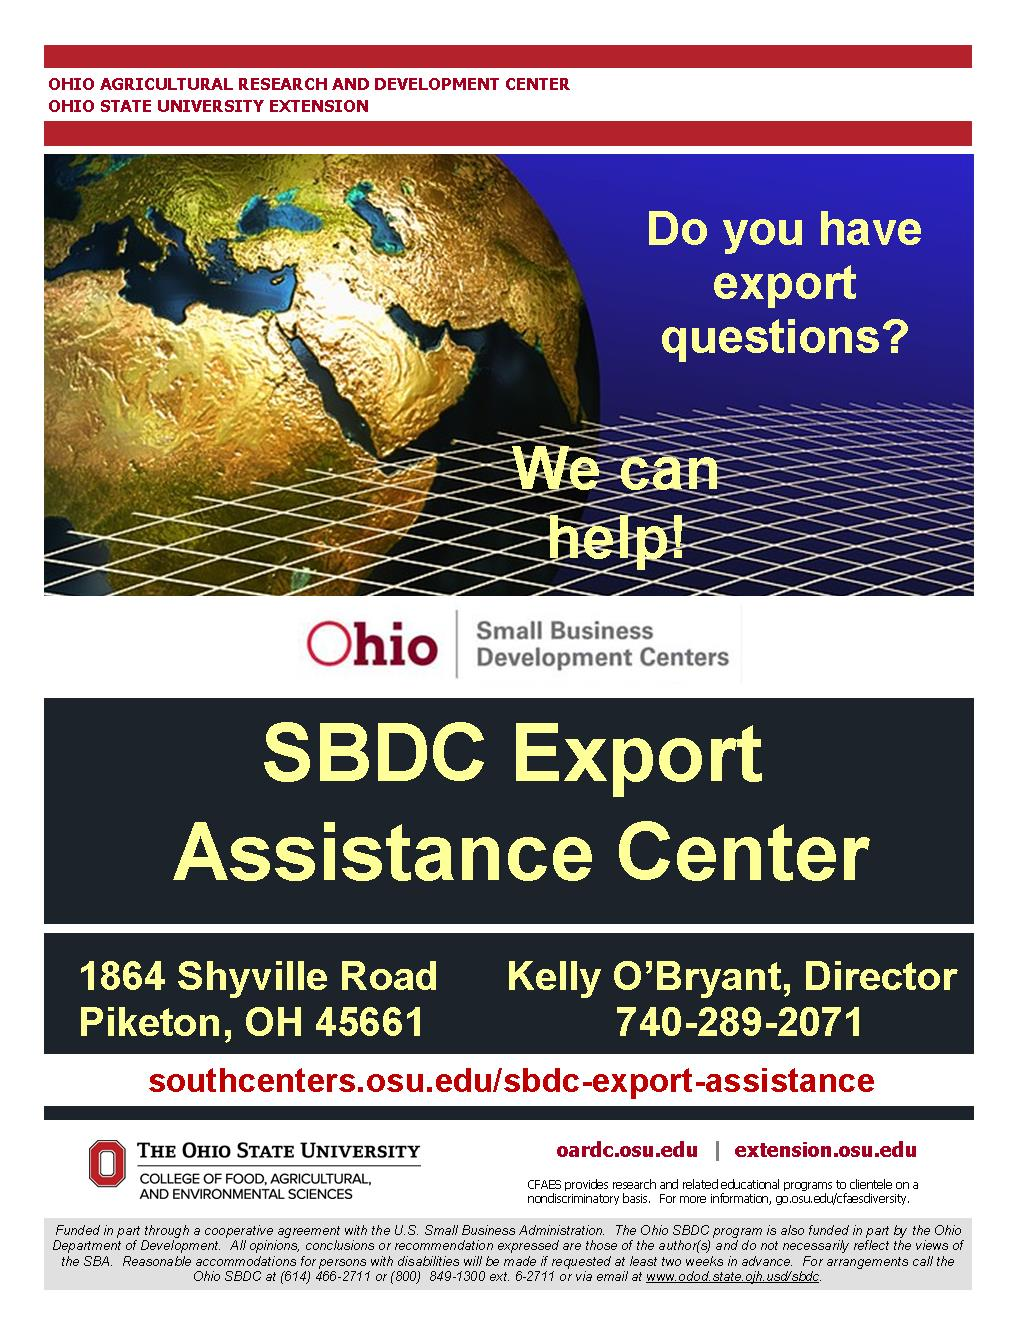 SBDC Export Assistance Center